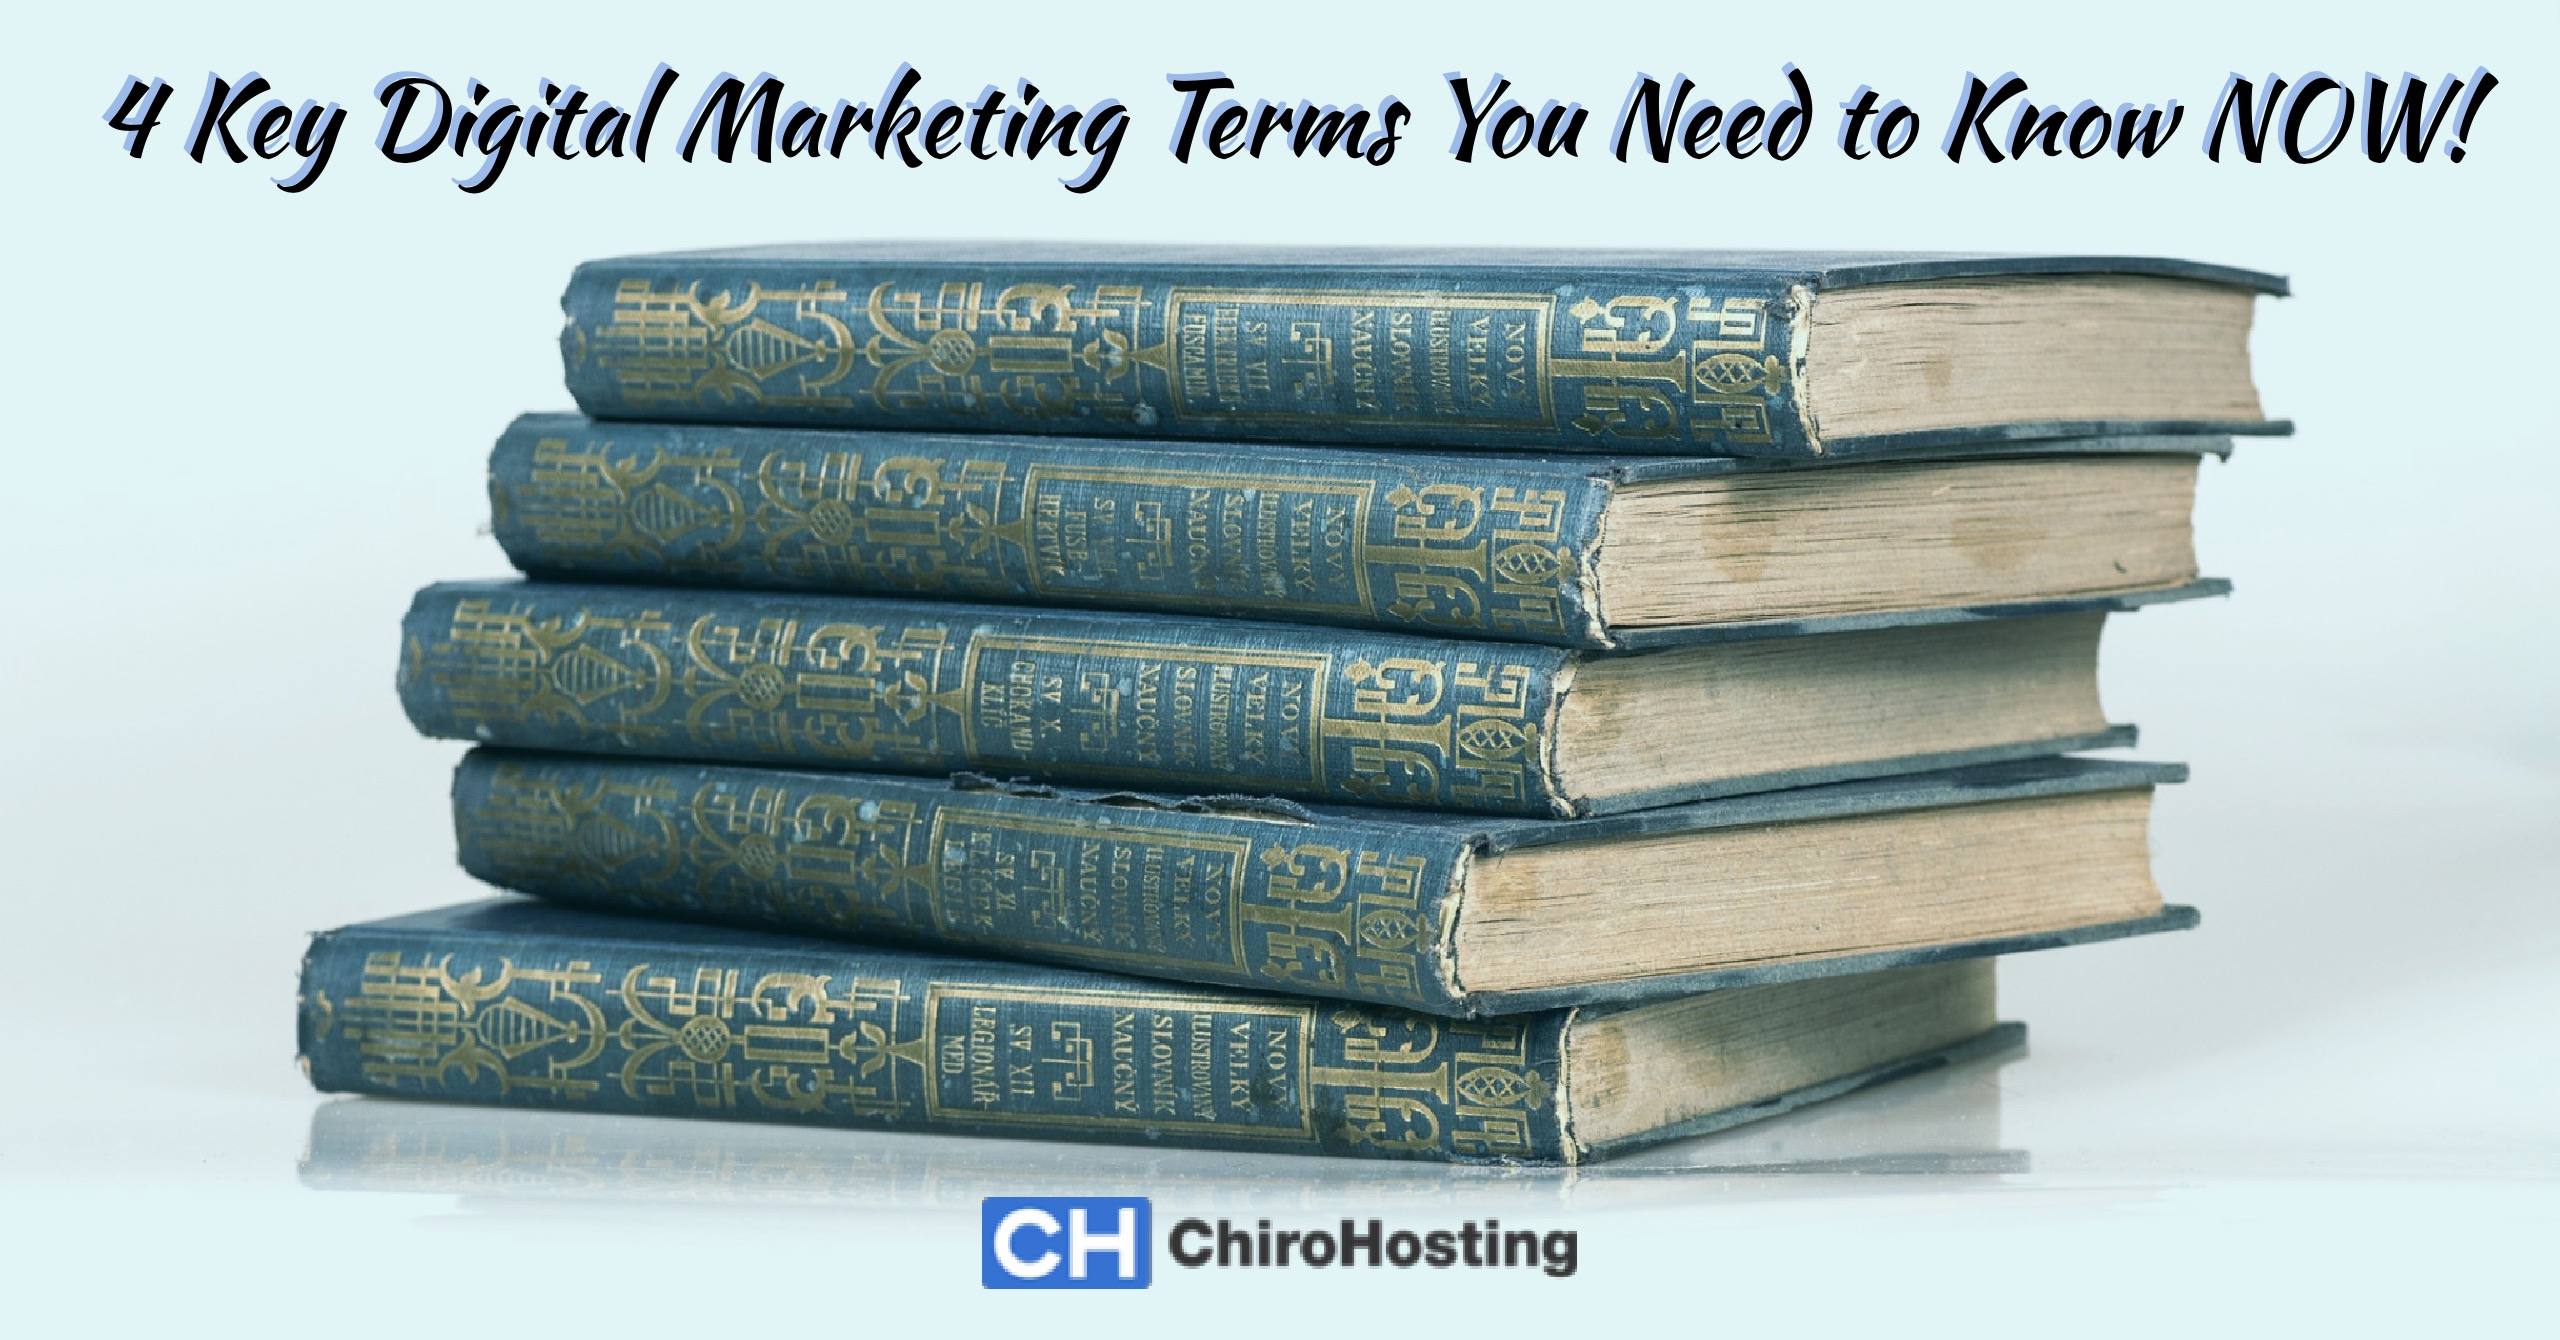 4 Key Chiropractic Marketing Terms You Need to Know NOW to Bump Your Local Search Ranking!